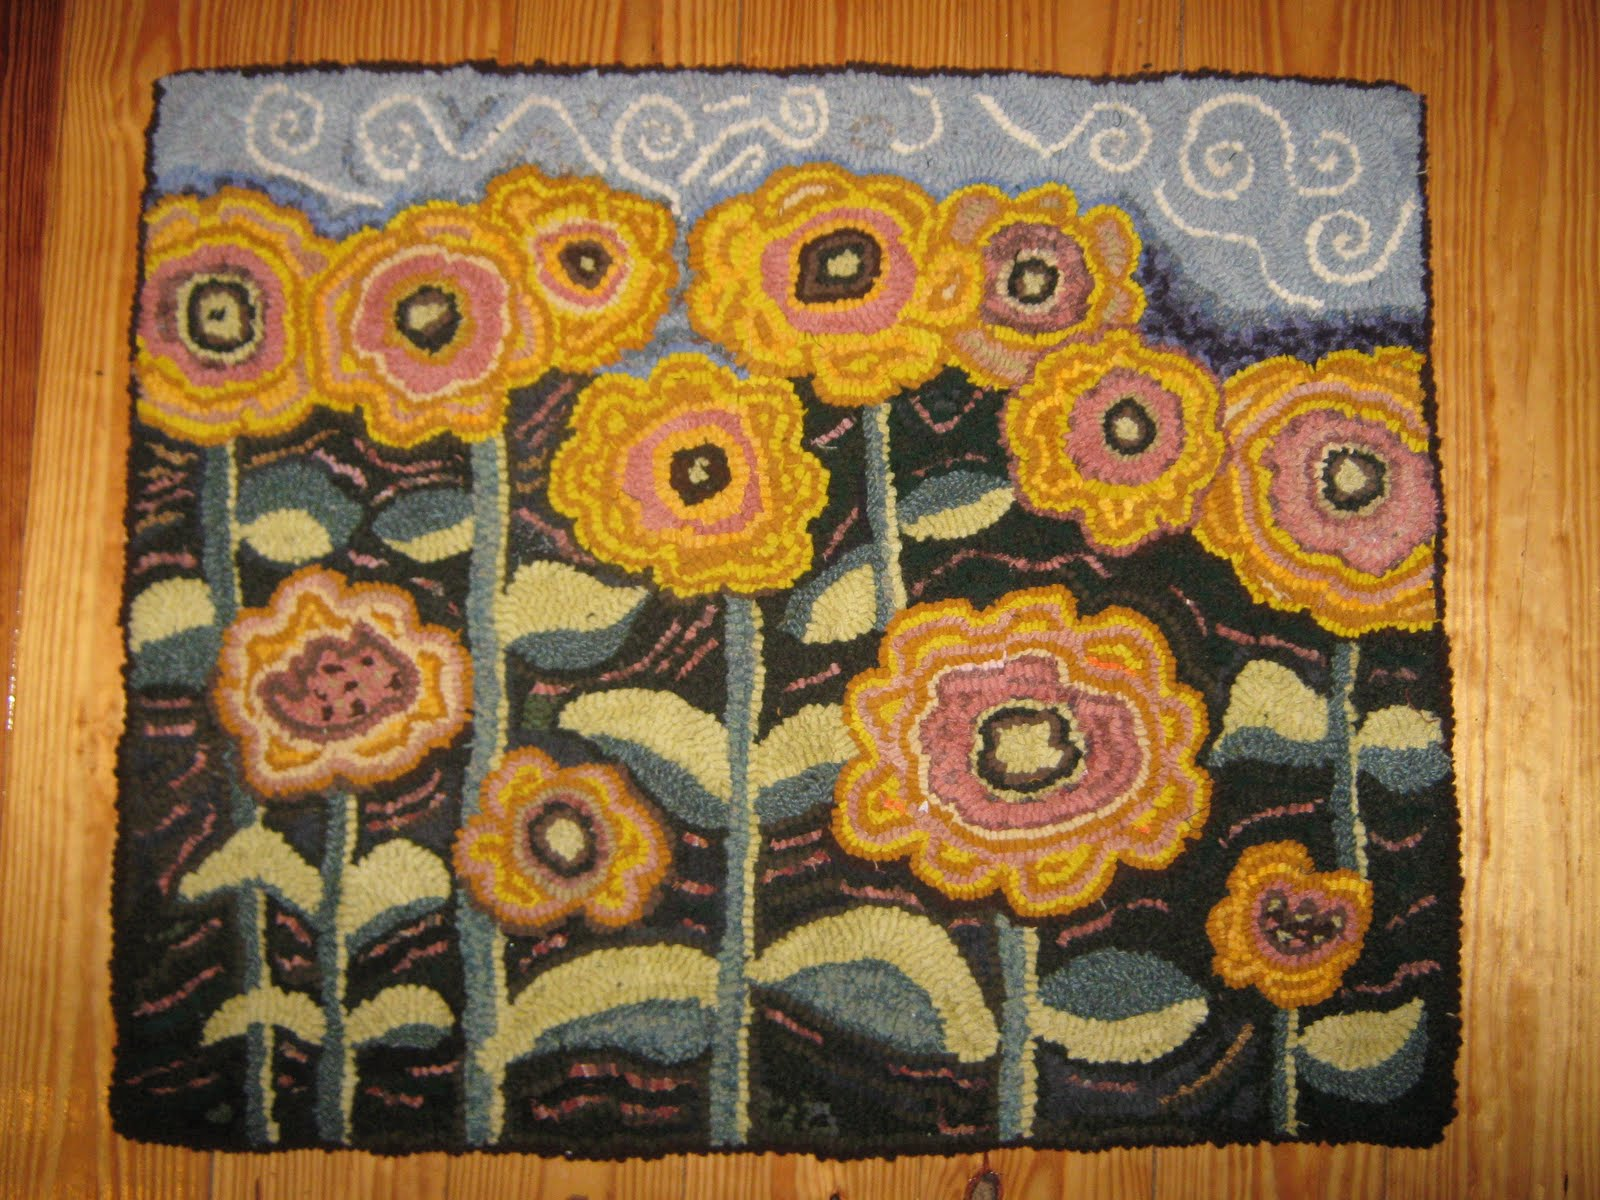 Vintage Spice and Everything Nice: Completed sunflower rug - Sunflower Rugs